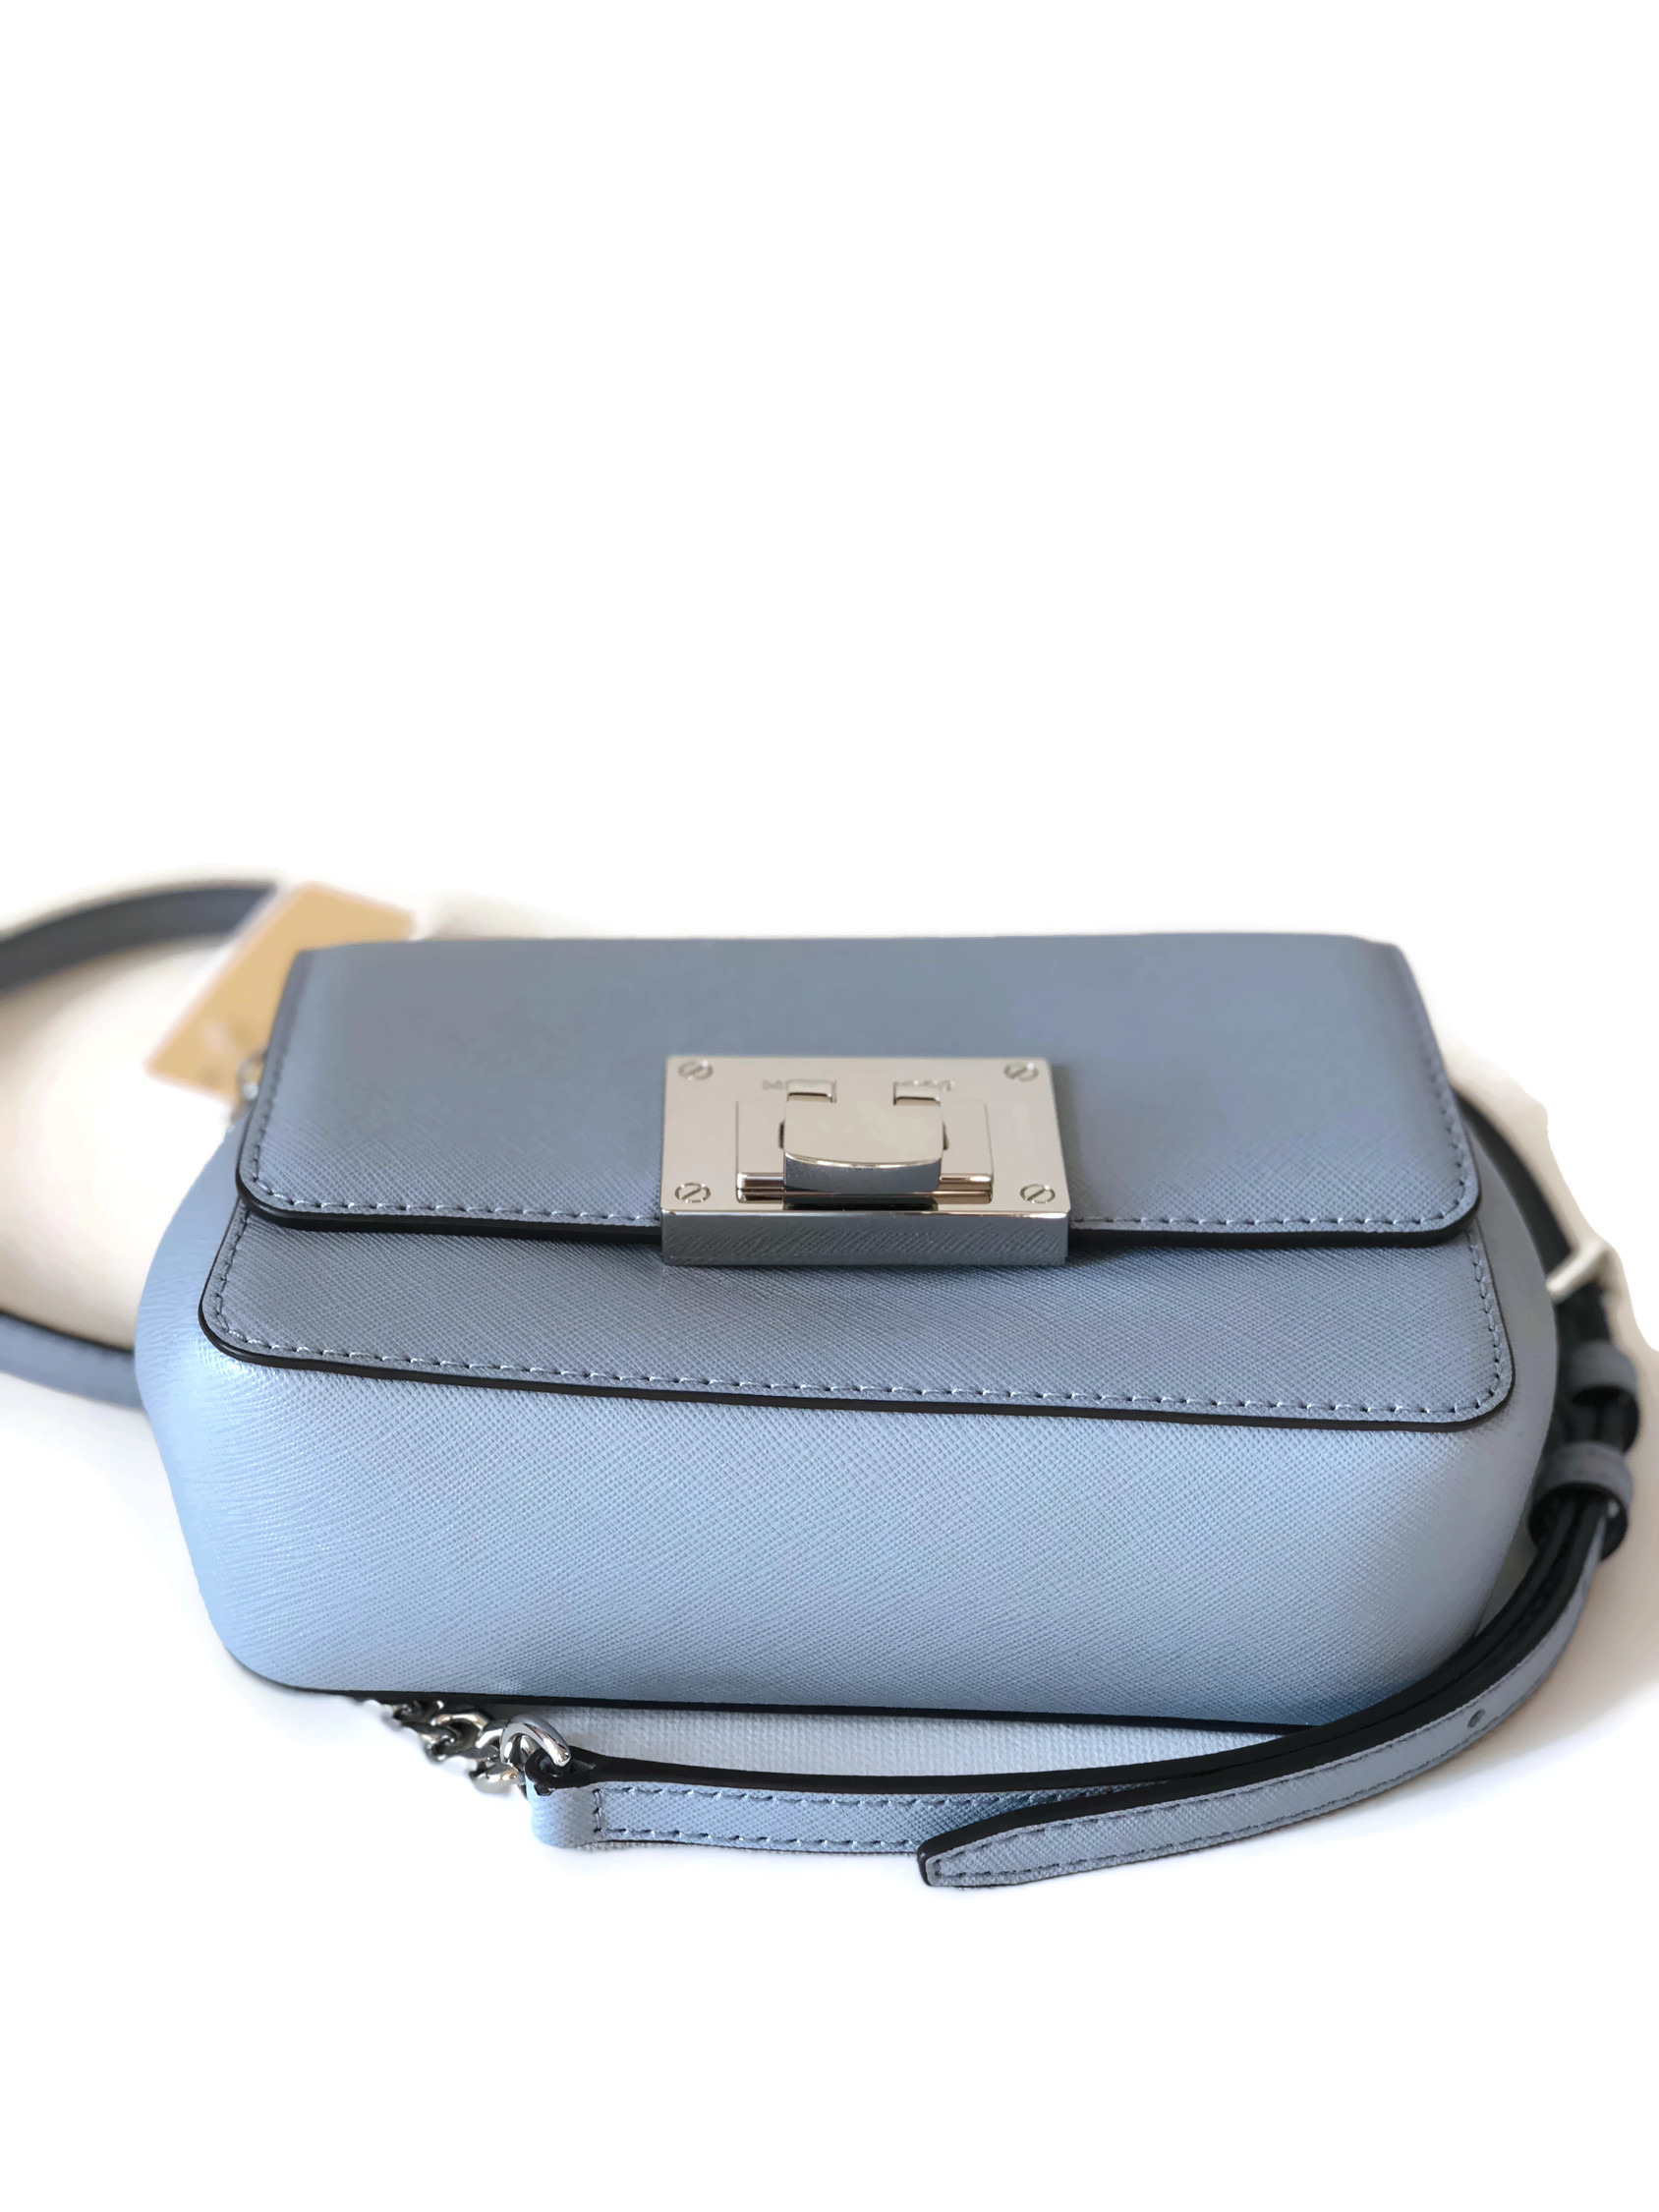 ed582f8c91c5 MICHAEL Michael Kors Tina Small Saffiano Leather Clutch Crossbody Bag - Pale  Blue - Walmart.com